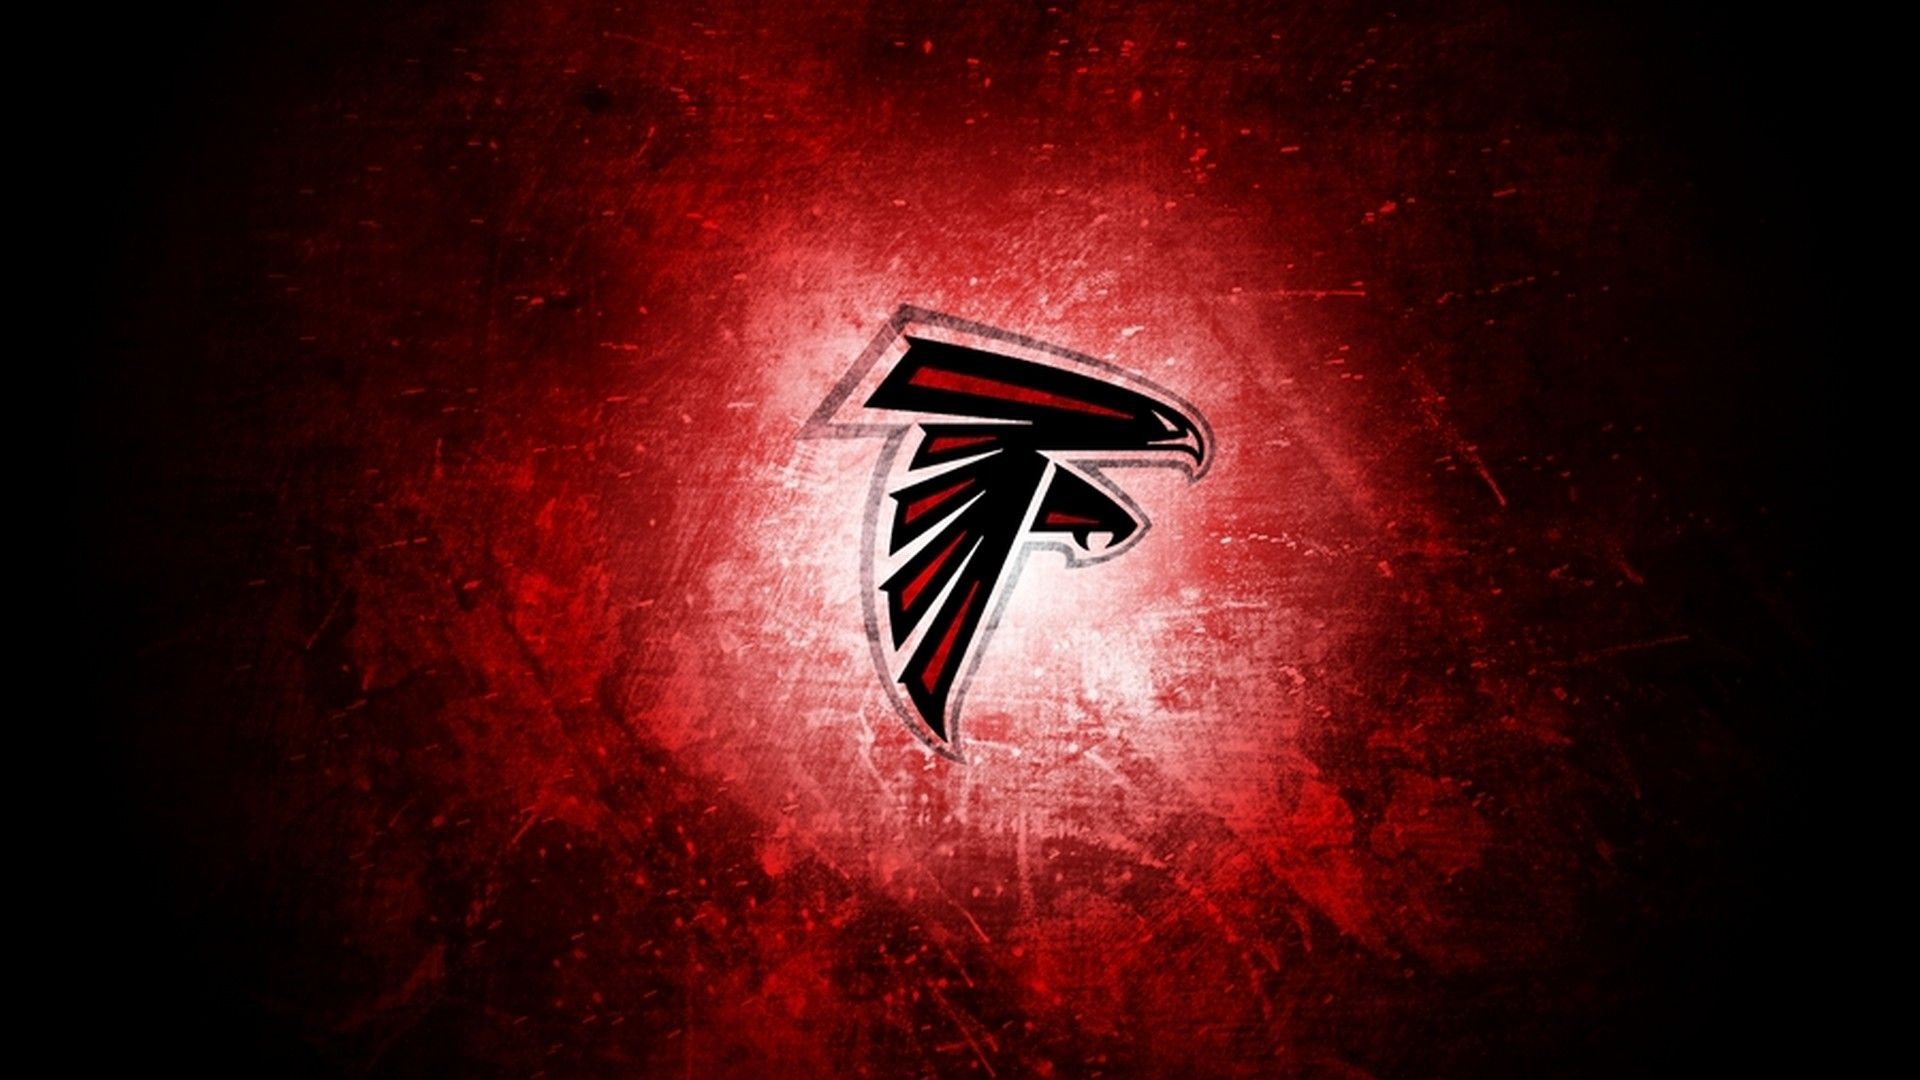 Wallpapers Hd Atlanta Falcons 2020 Nfl Football Wallpapers Football Paintings Wall Painting Wallpaper